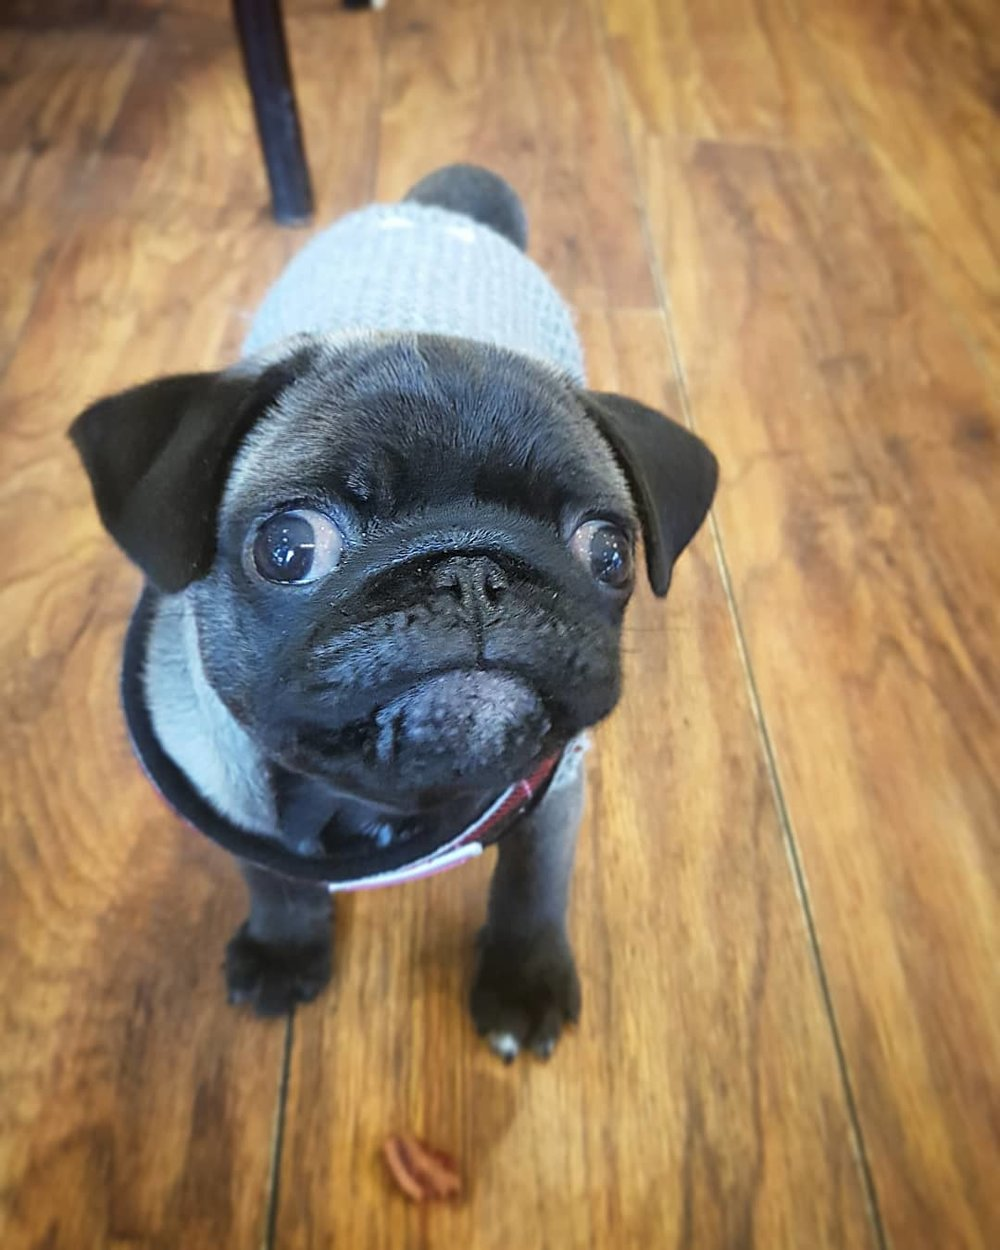 Doug the Adorable Pug came in to see us for the first time today. He didn't want to leave!